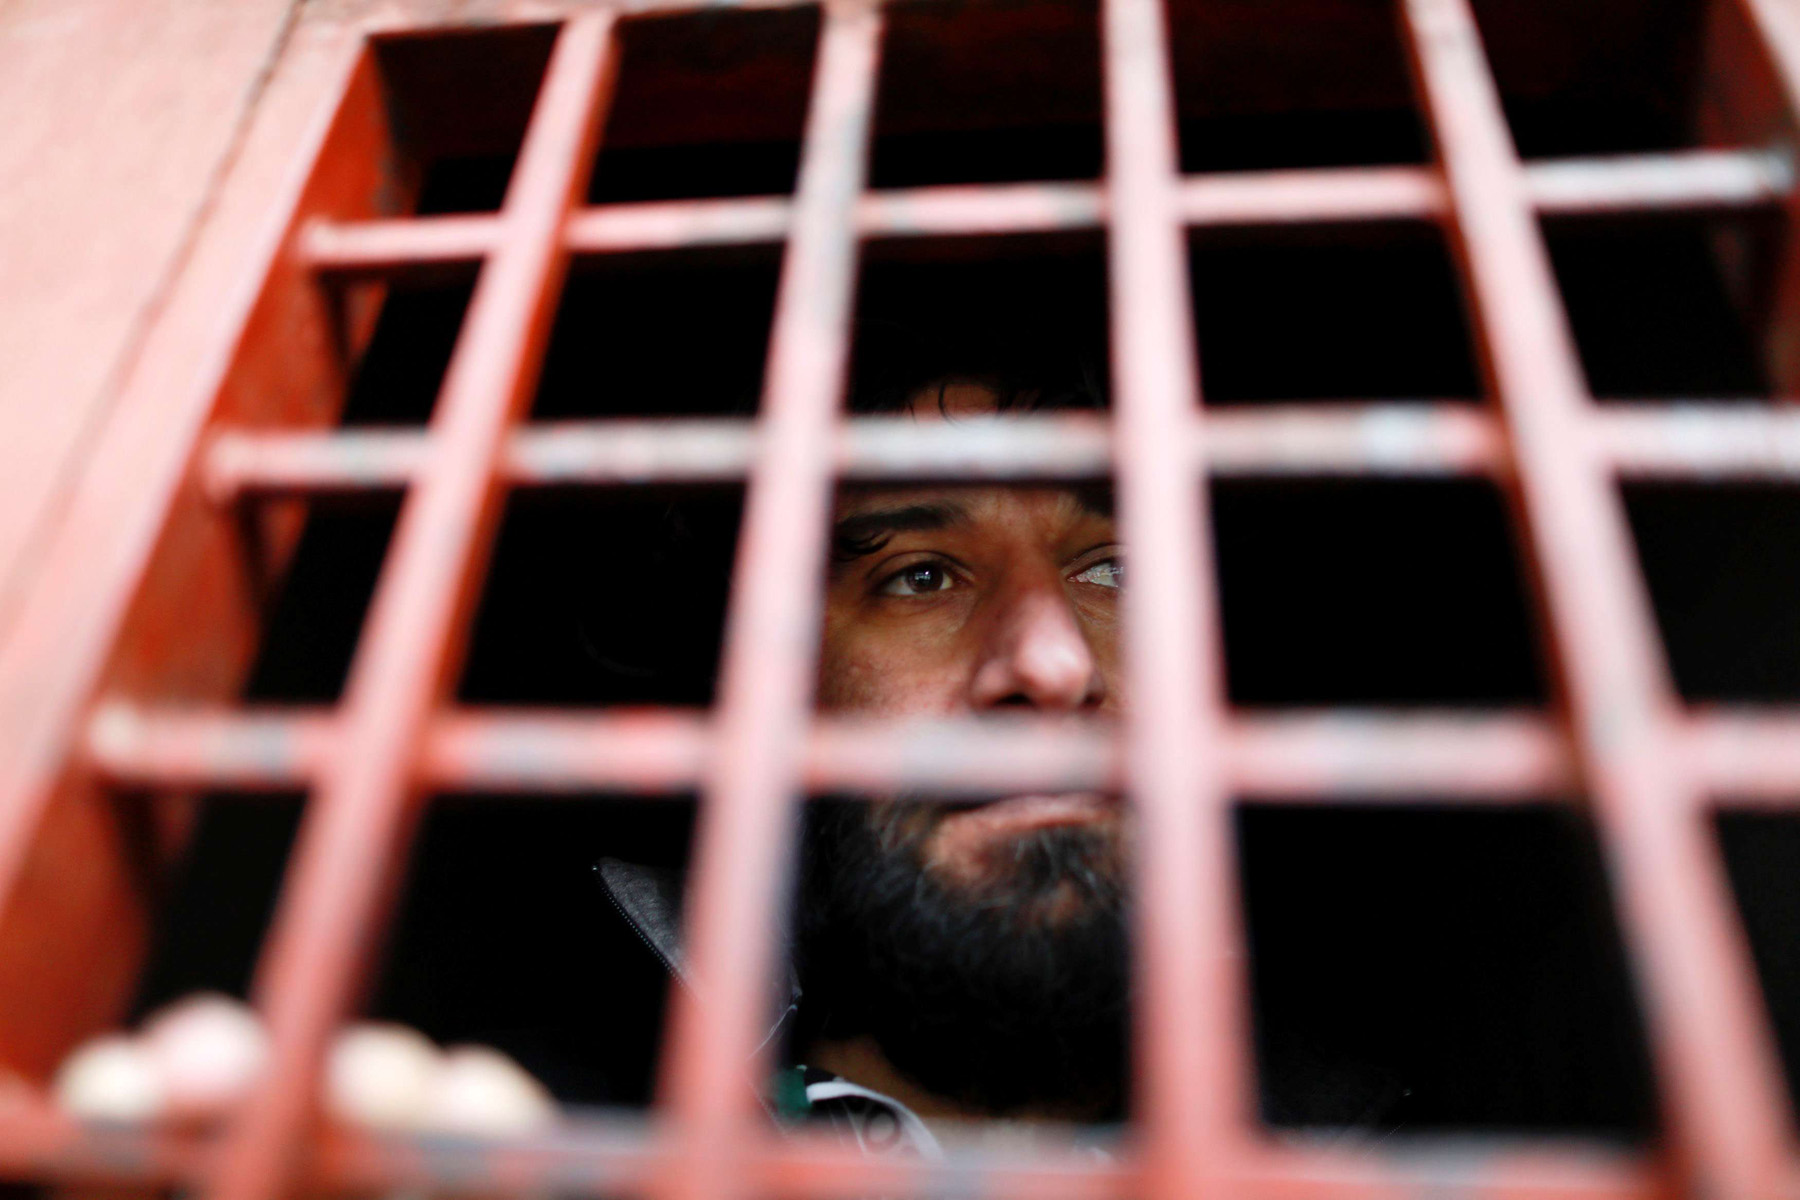 An ISIS member looks out from a prison cell in Sulaymaniyah, Iraq.  (Reuters)